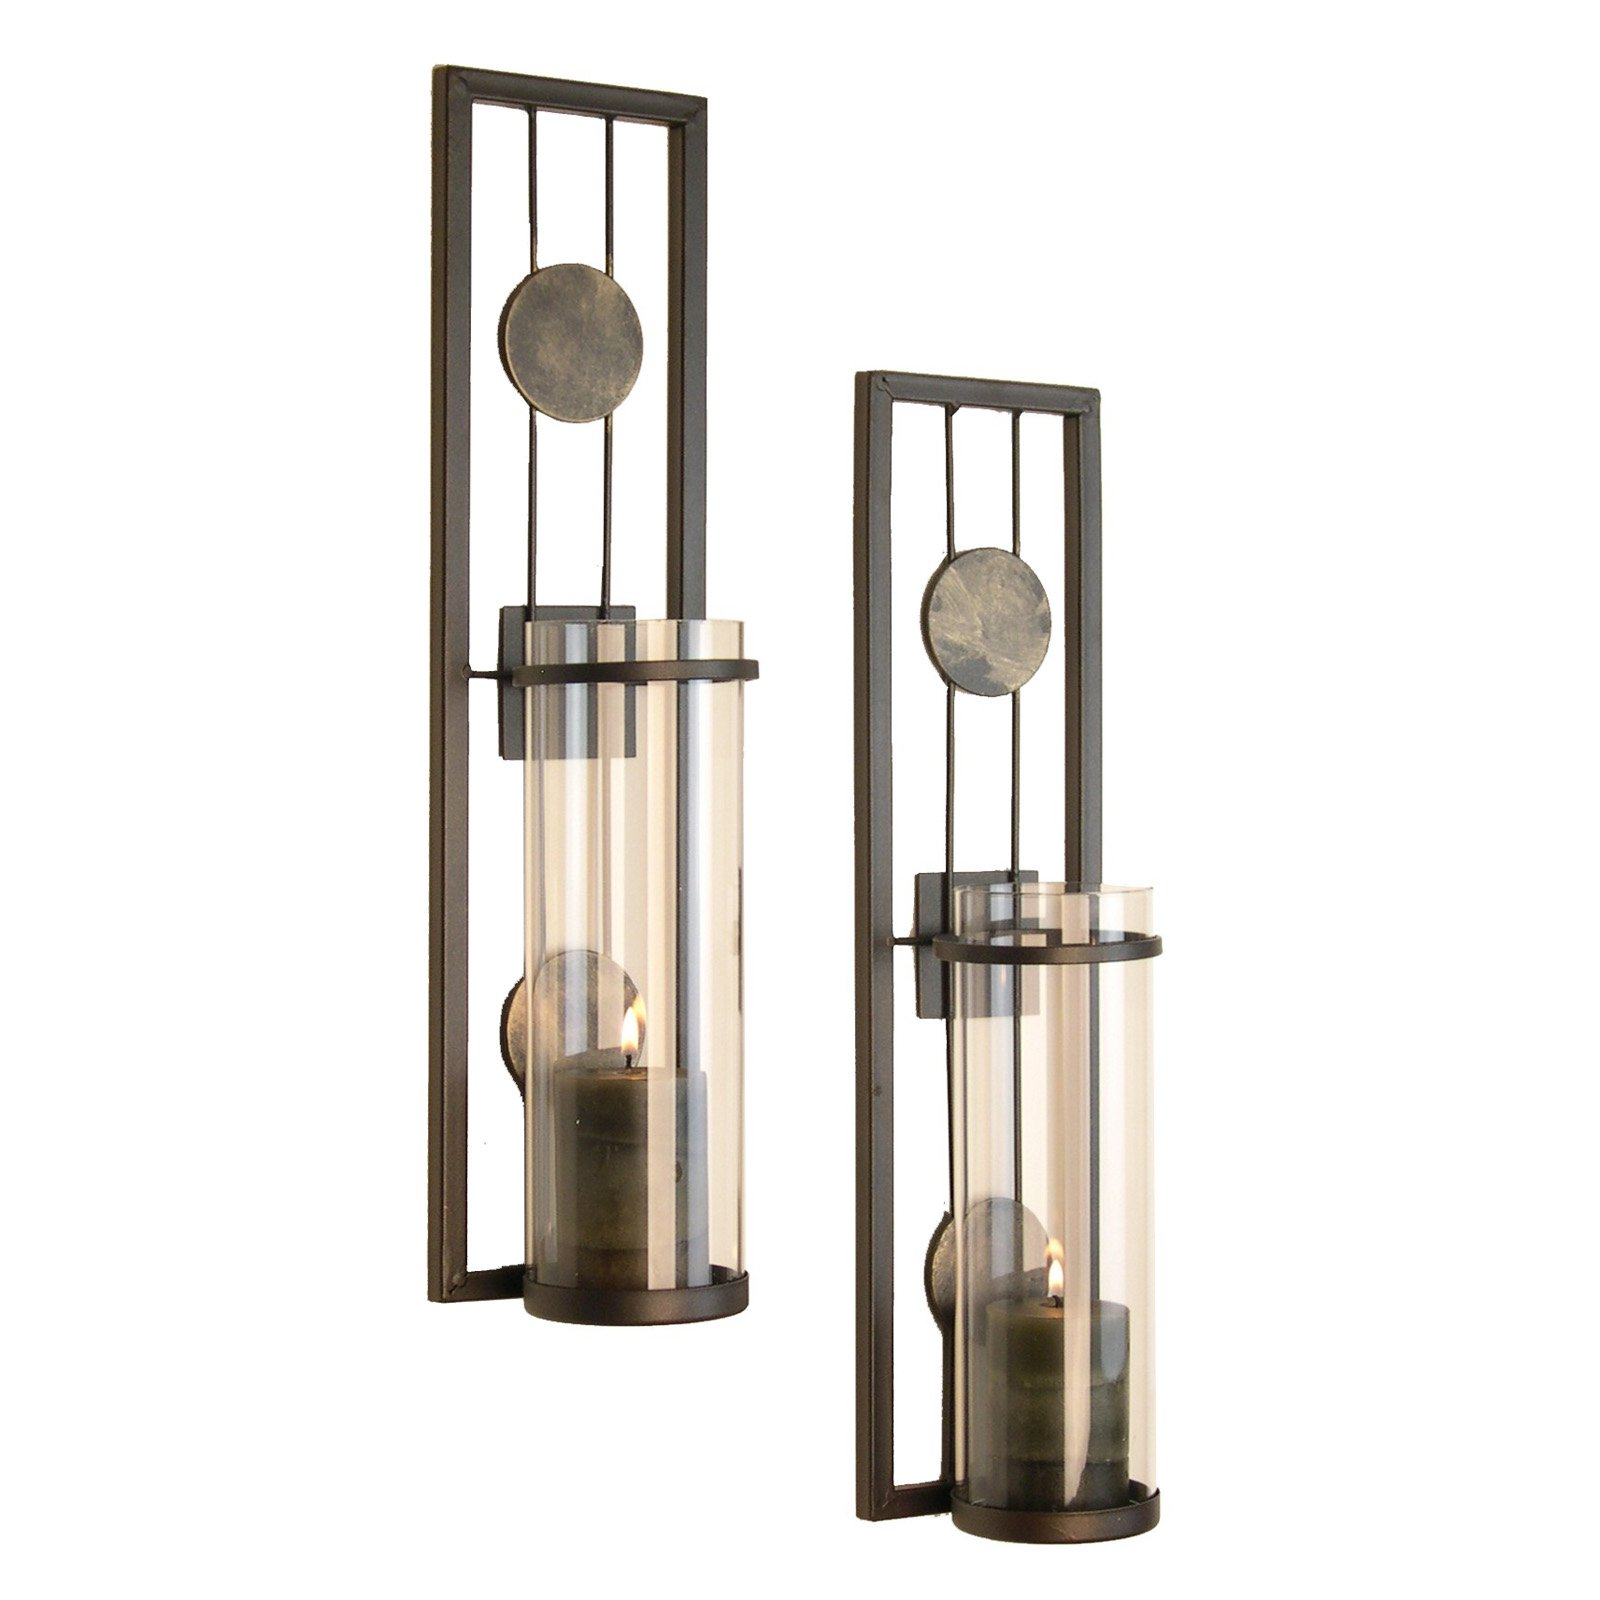 Danya b contemporary metal wall sconces with antique patina danya b contemporary metal wall sconces with antique patina medallions set of 2 walmart amipublicfo Choice Image